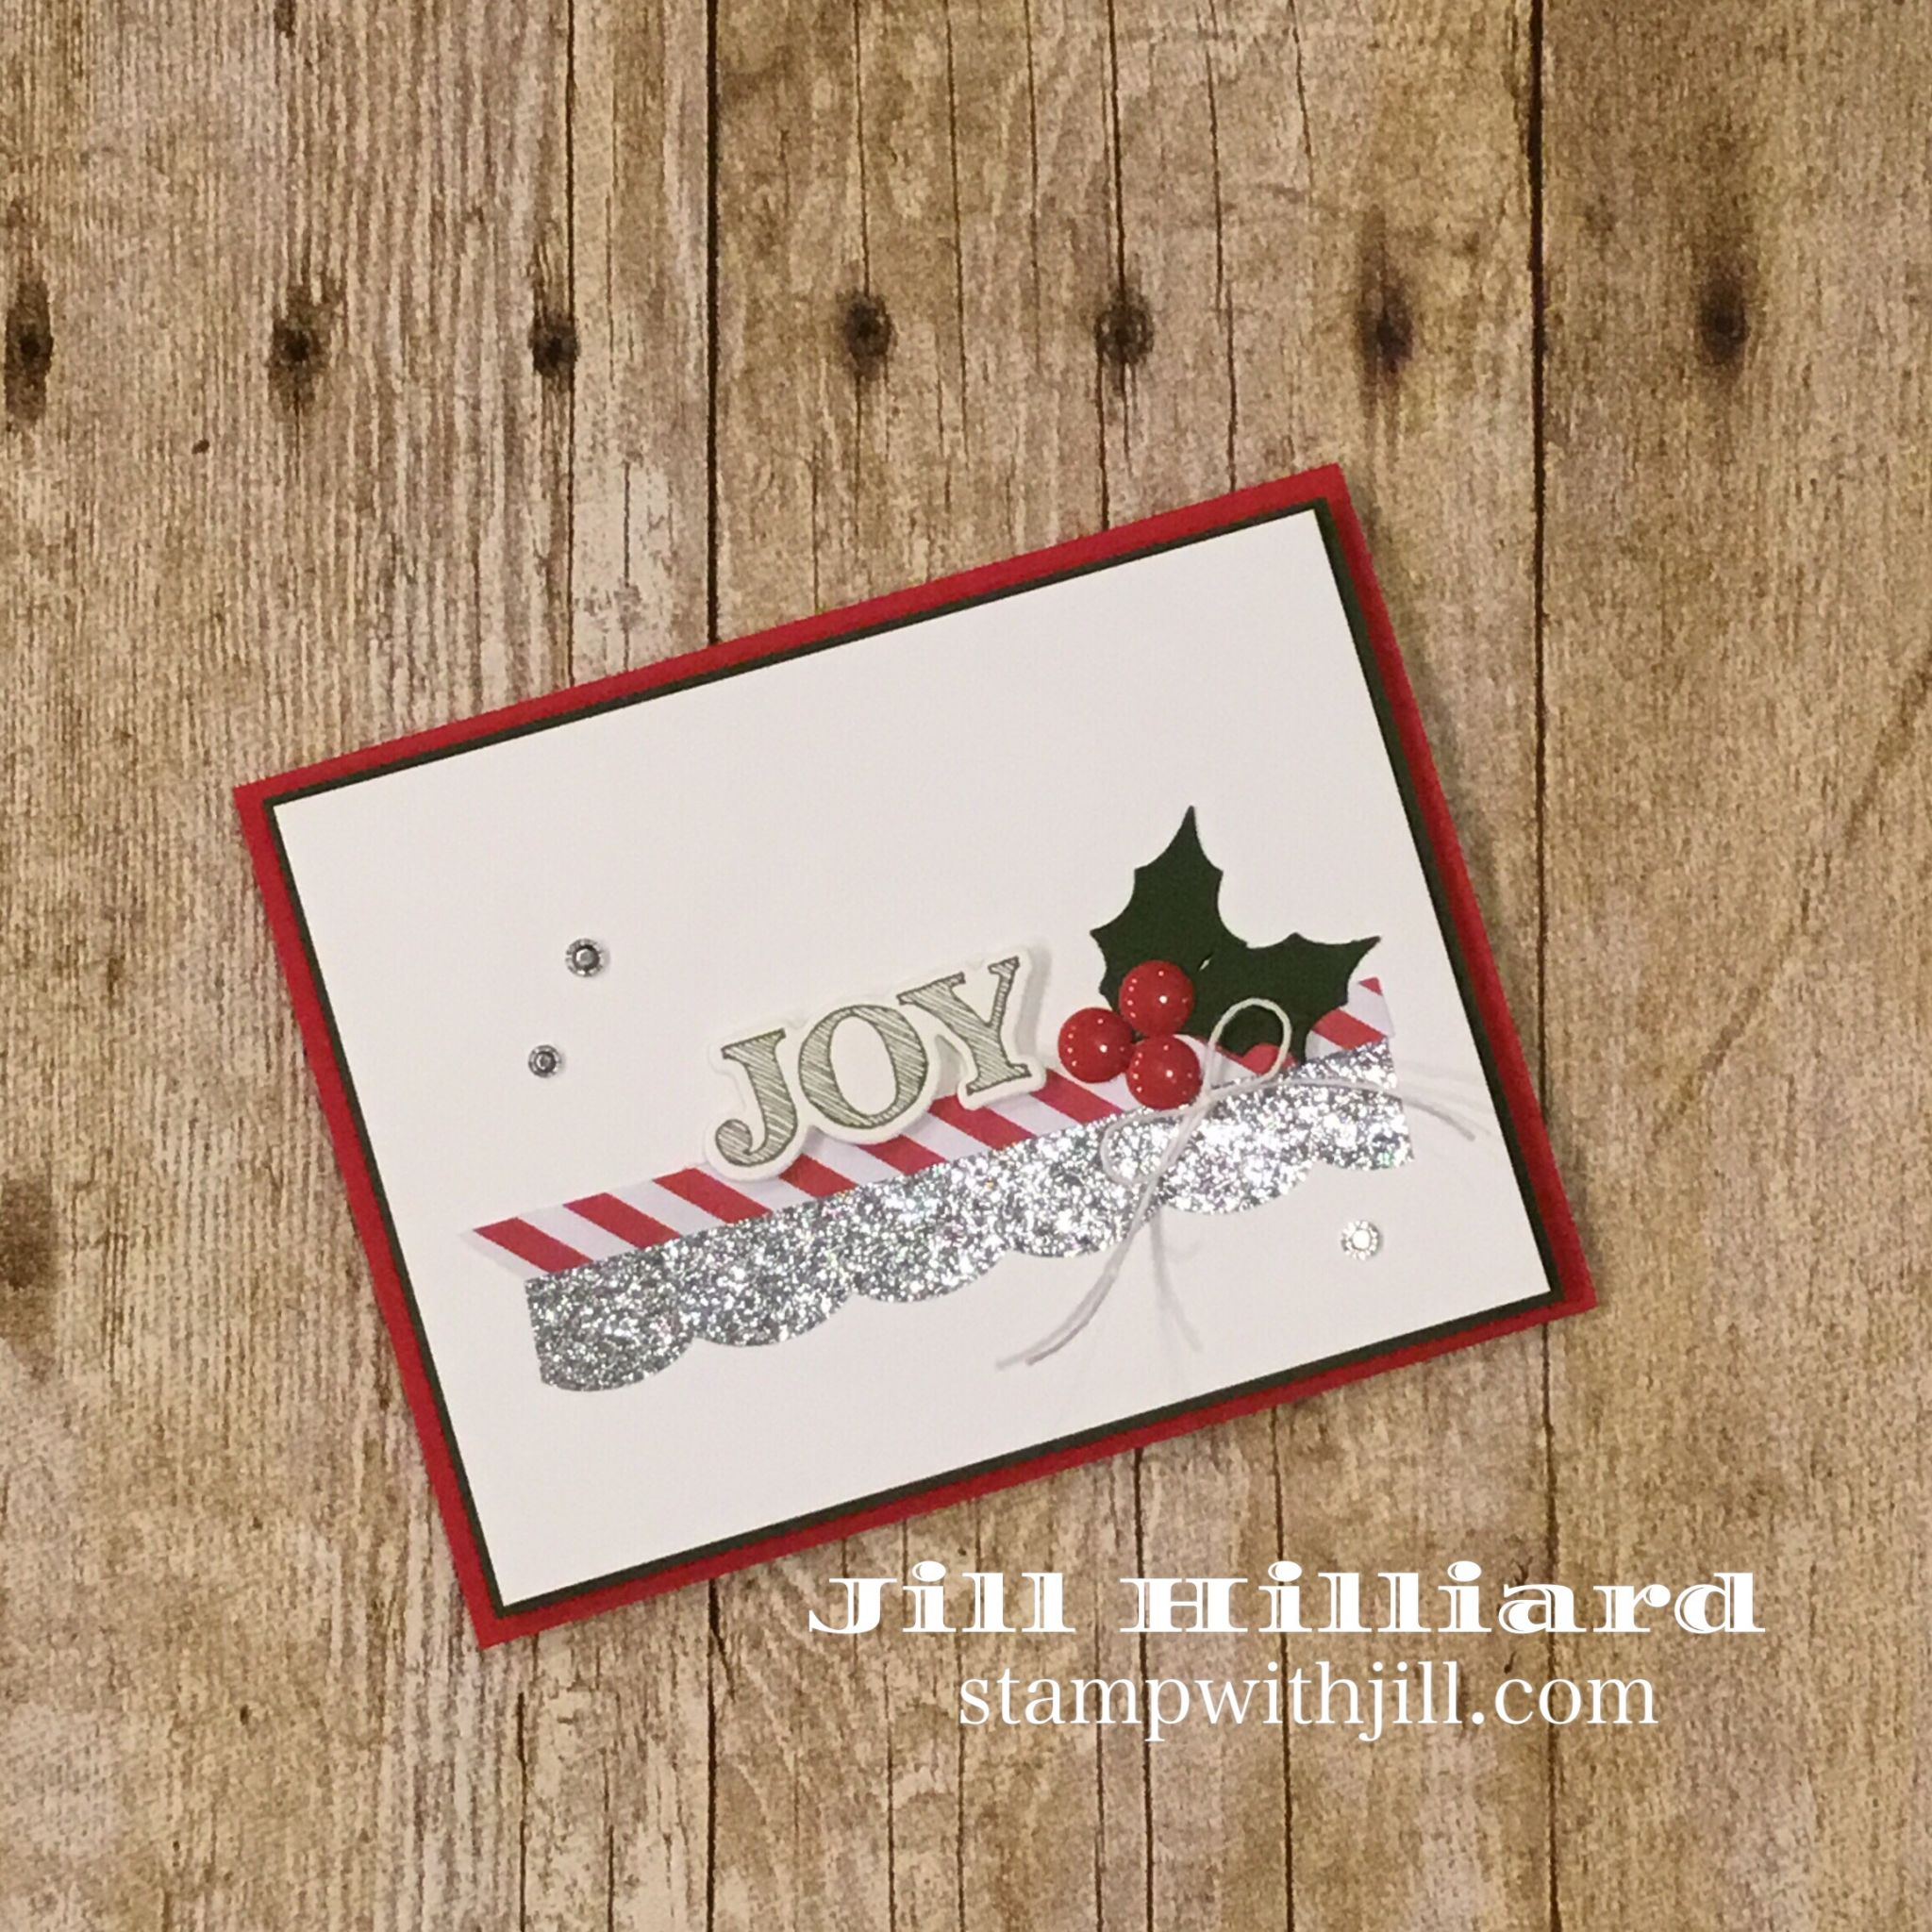 Gnome-for-the-holidays-fun-stampers-journey-FSJ-jills-card-creations-washi-tape-christmas